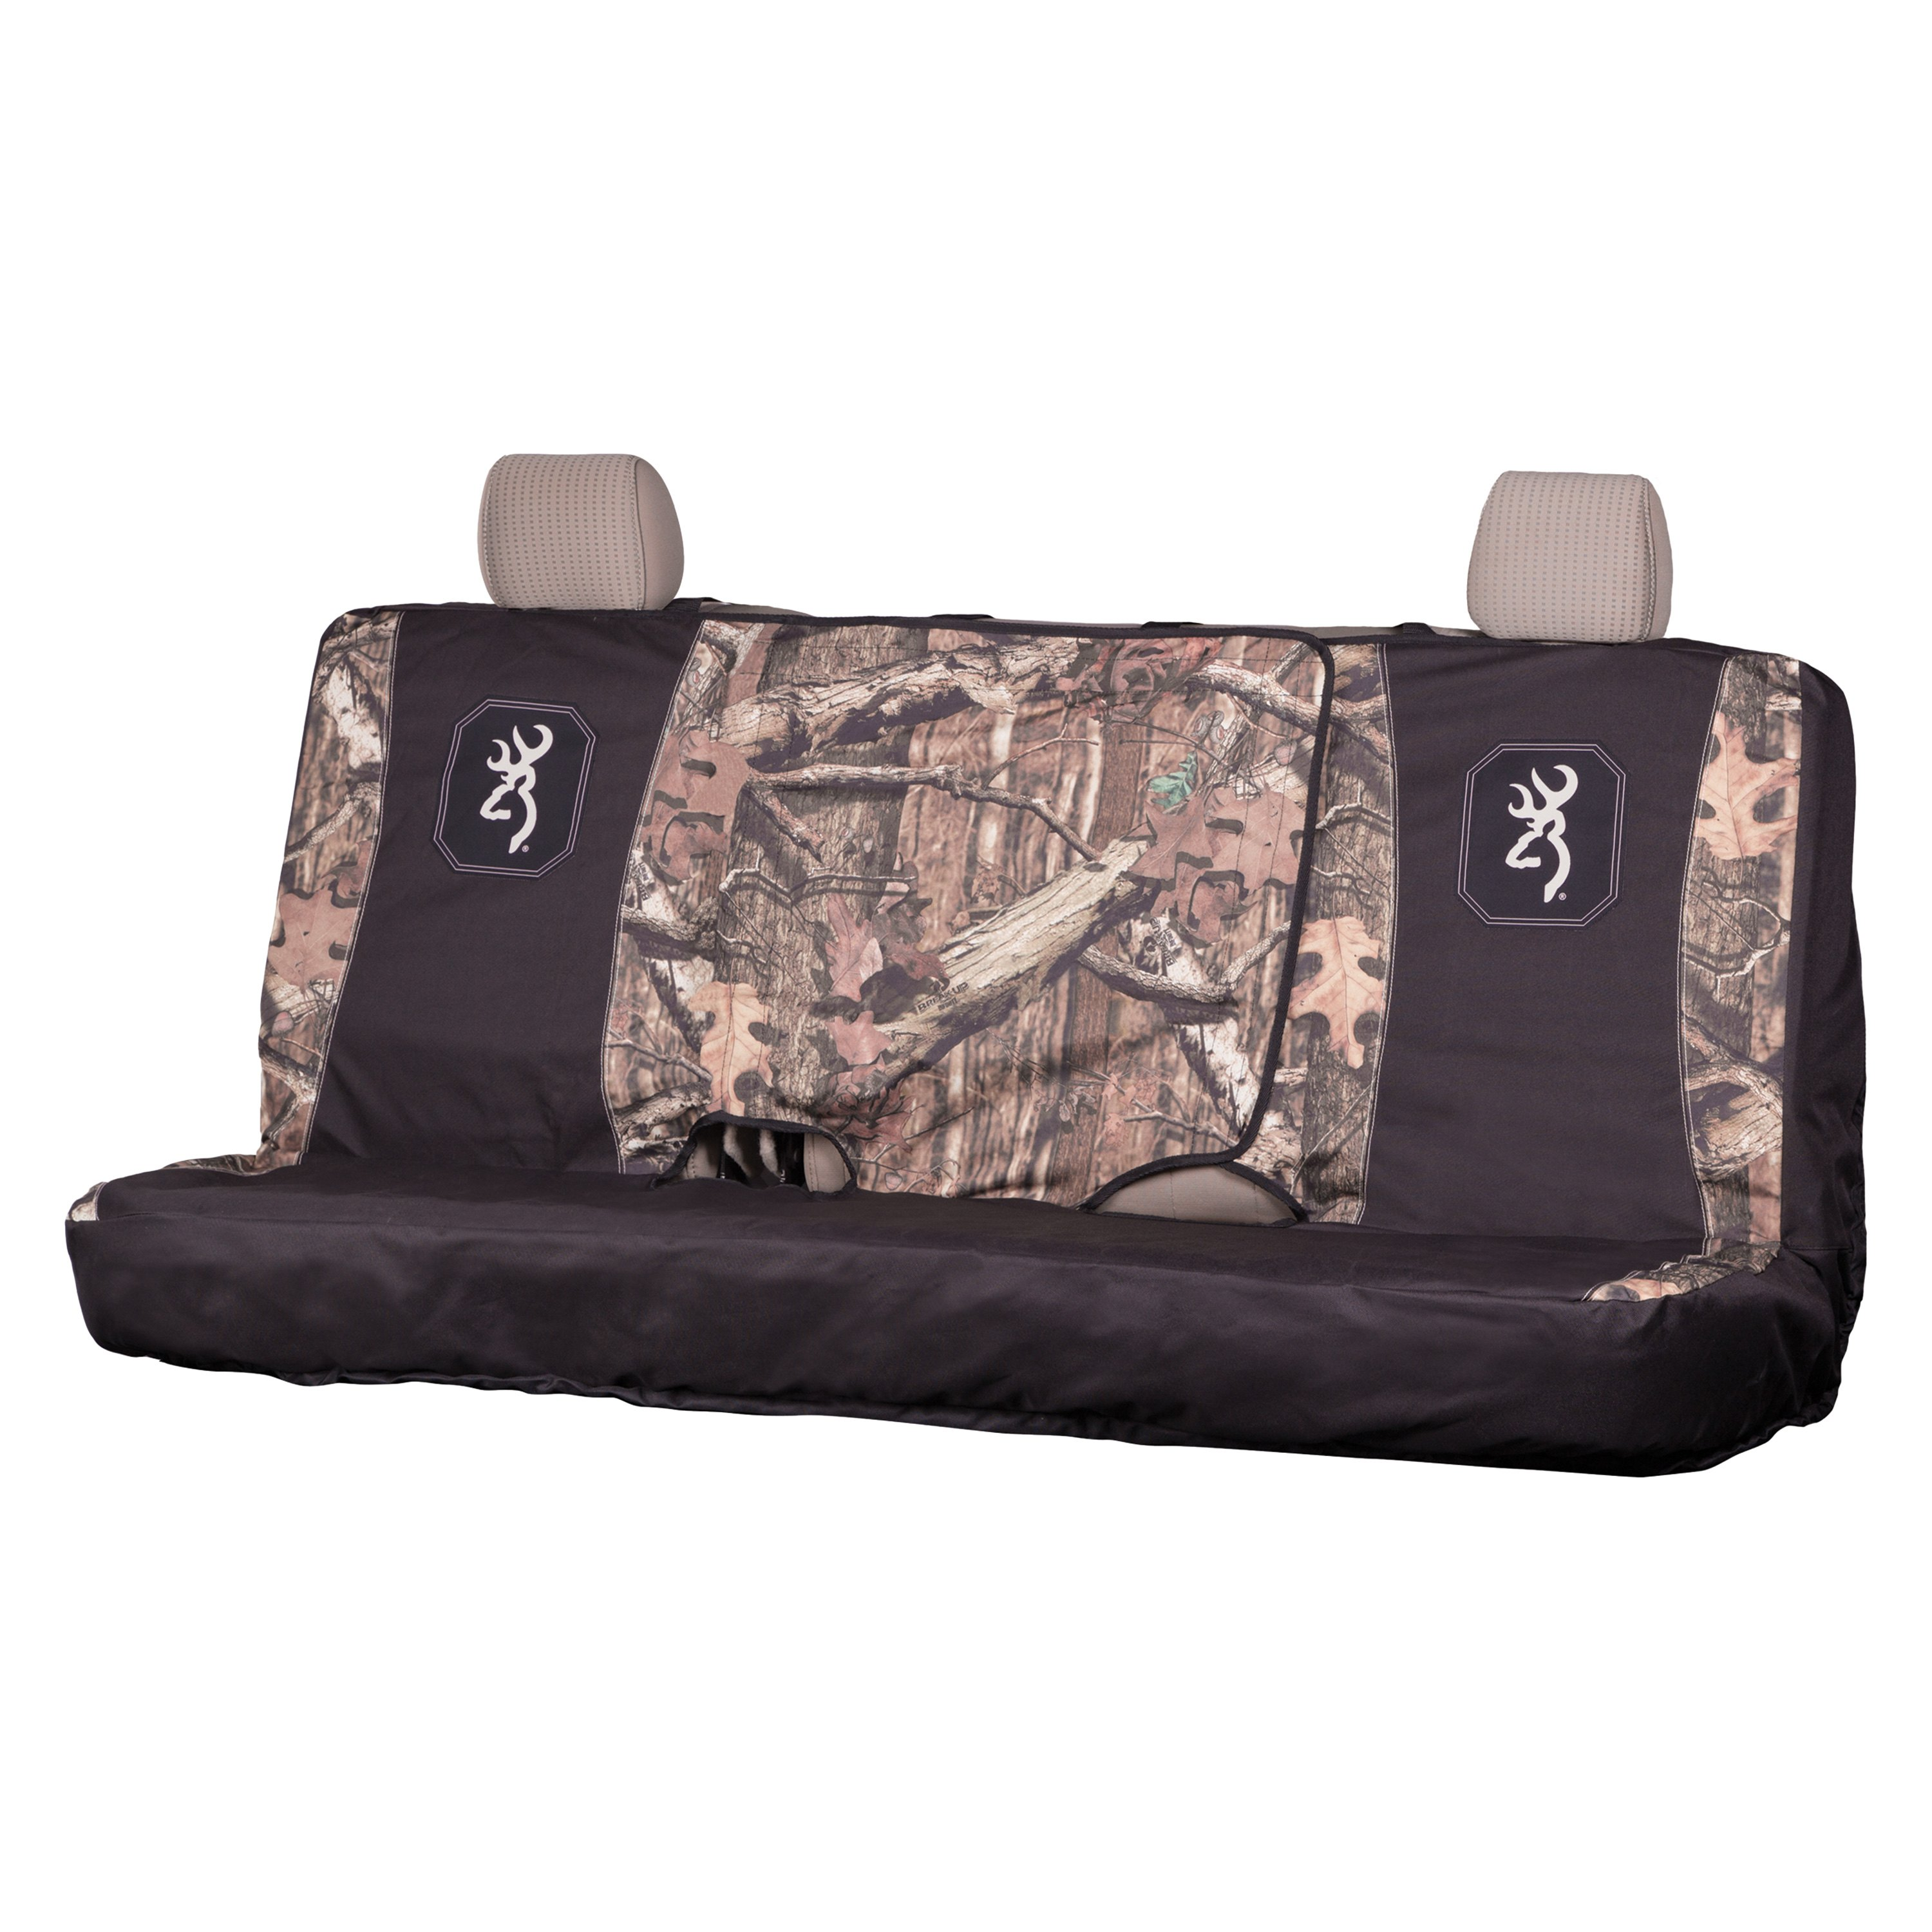 company for seat camouflage trim photo camo of fit floor browning mats rear arms to suv front black heavy print car pink mat beautiful truck cars duty arm buckmark x